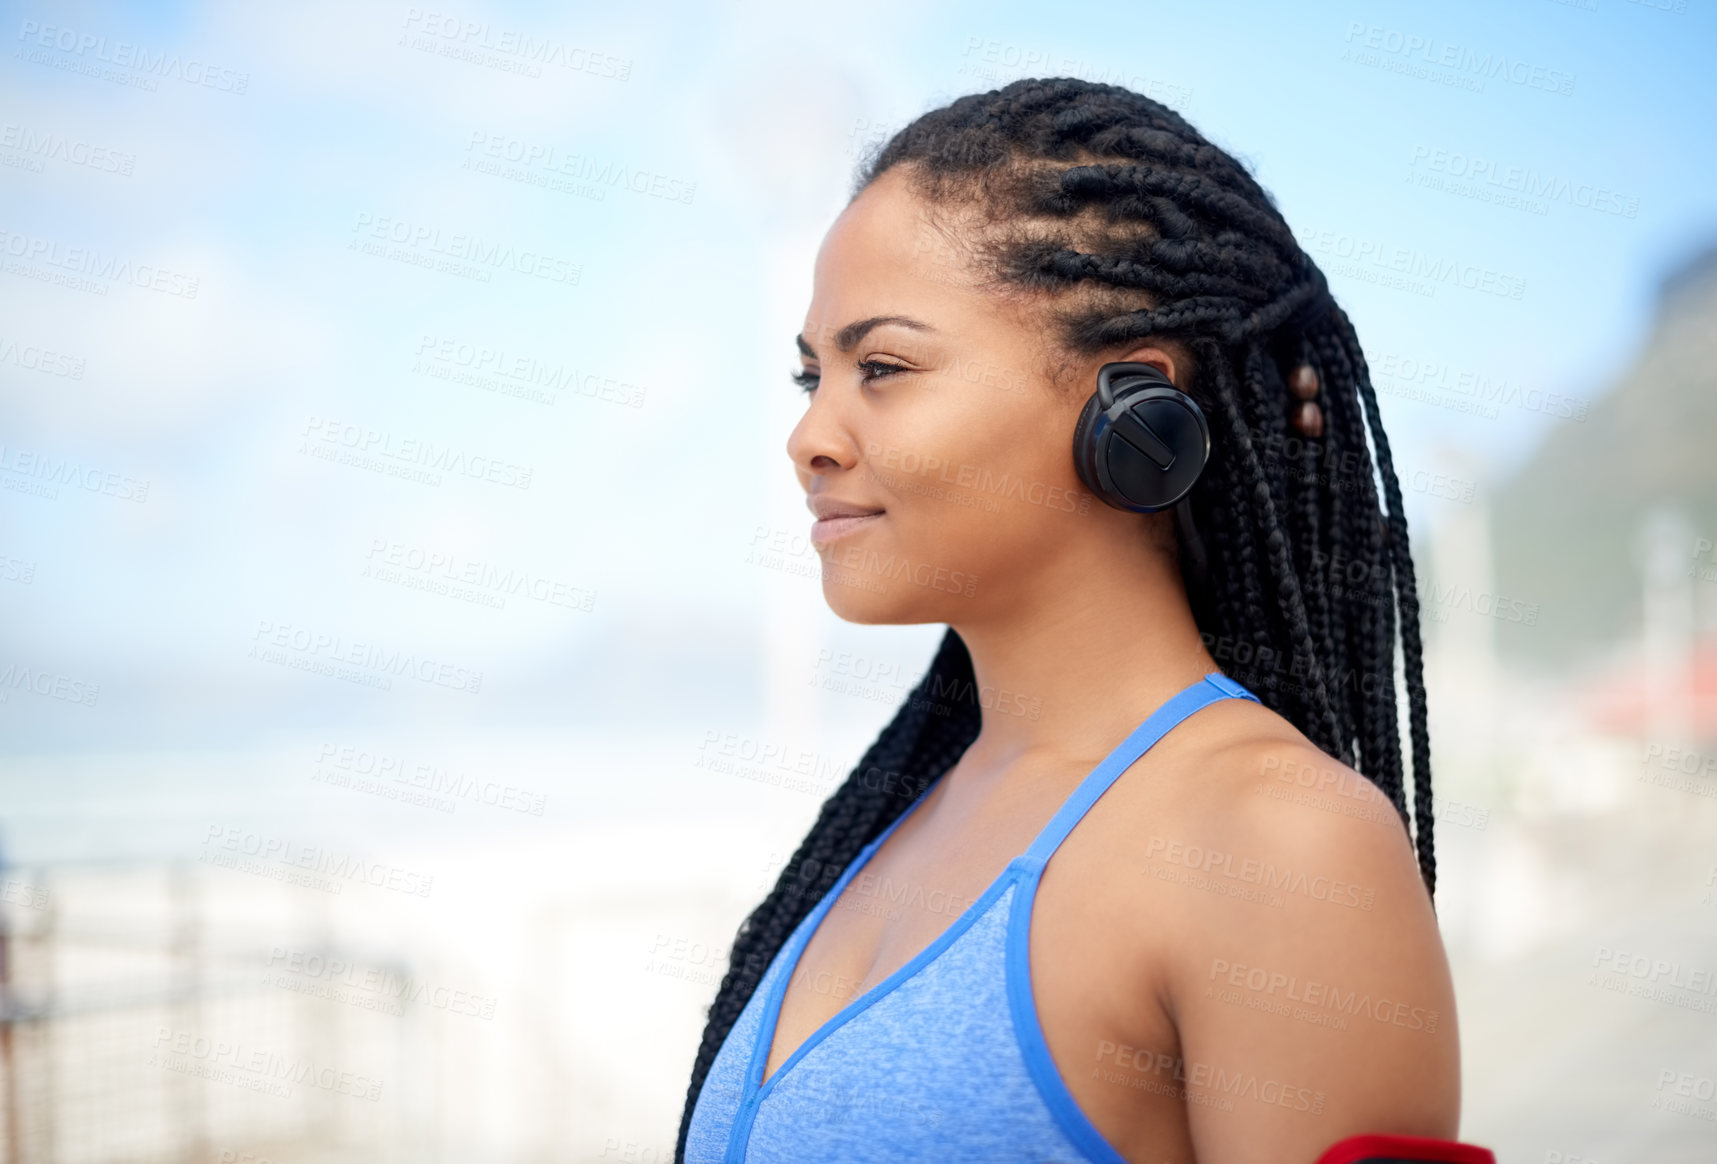 Buy stock photo Shot of an attractive young woman wearing headsets while exercising outdoors